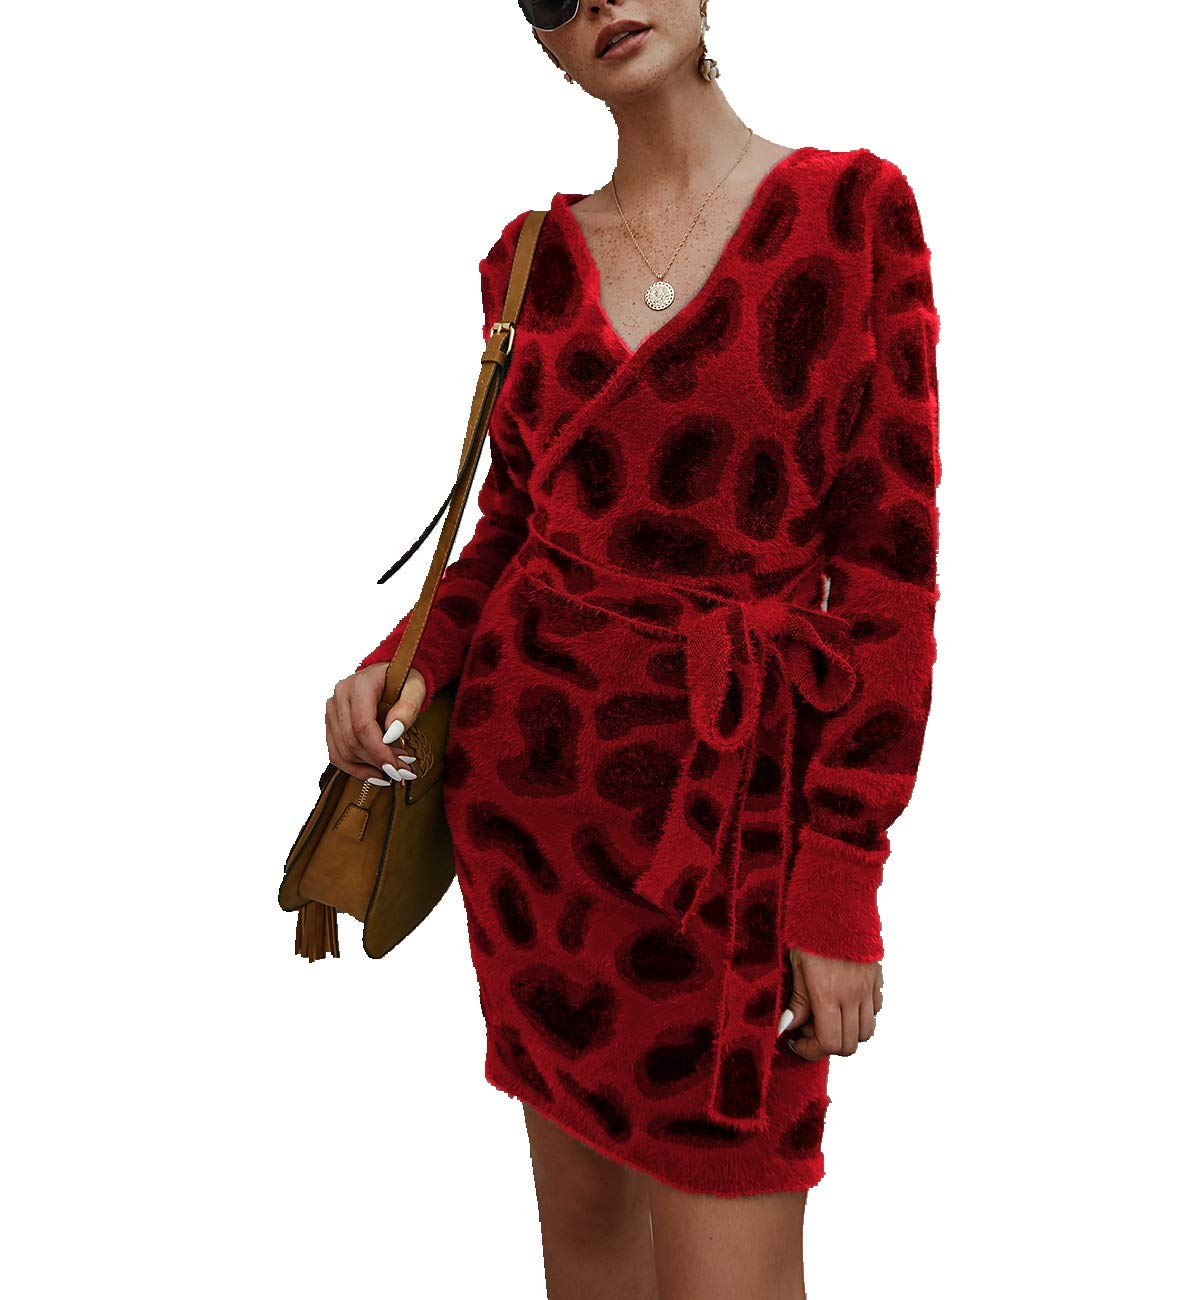 Women's Casual Knit Sweater Wrap Dress,Long Bat Wing Sleeve Leopard Print V Neck Backless Slim Fit Pencil Dresses with Belt Red by KINGLEN Womens Dress